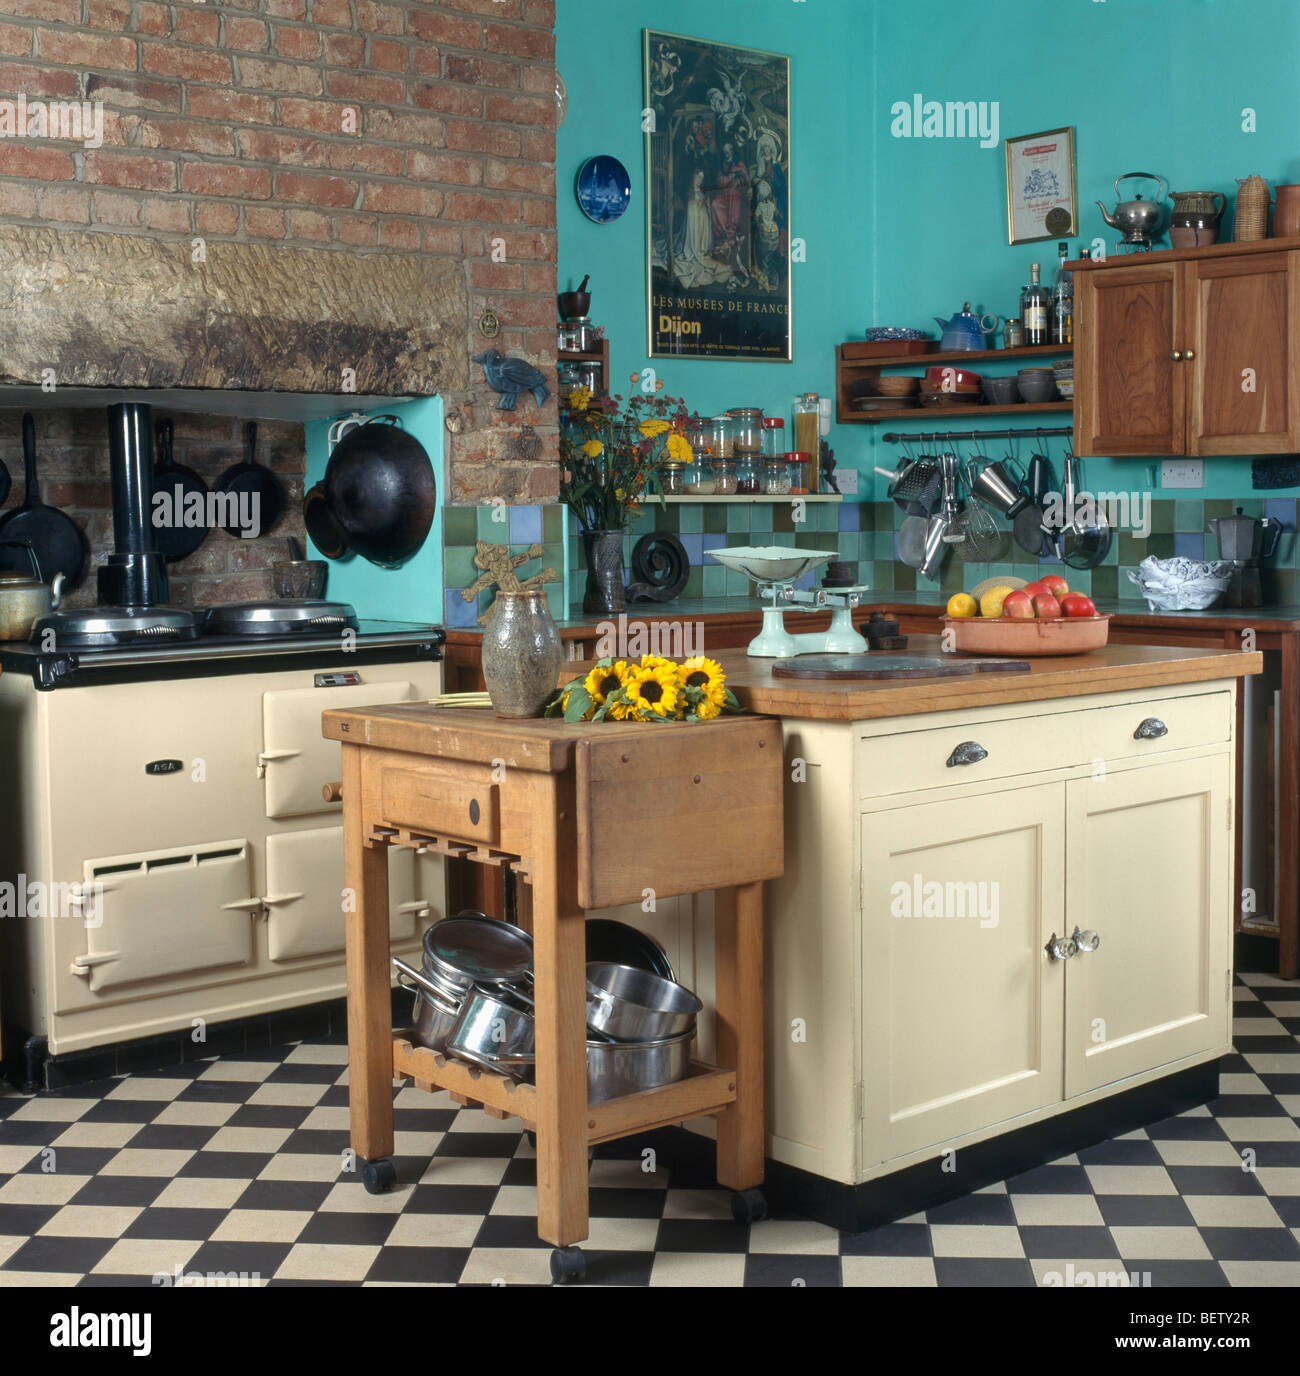 Black Country Kitchen butcher's block beside cream island unit in turquoise country